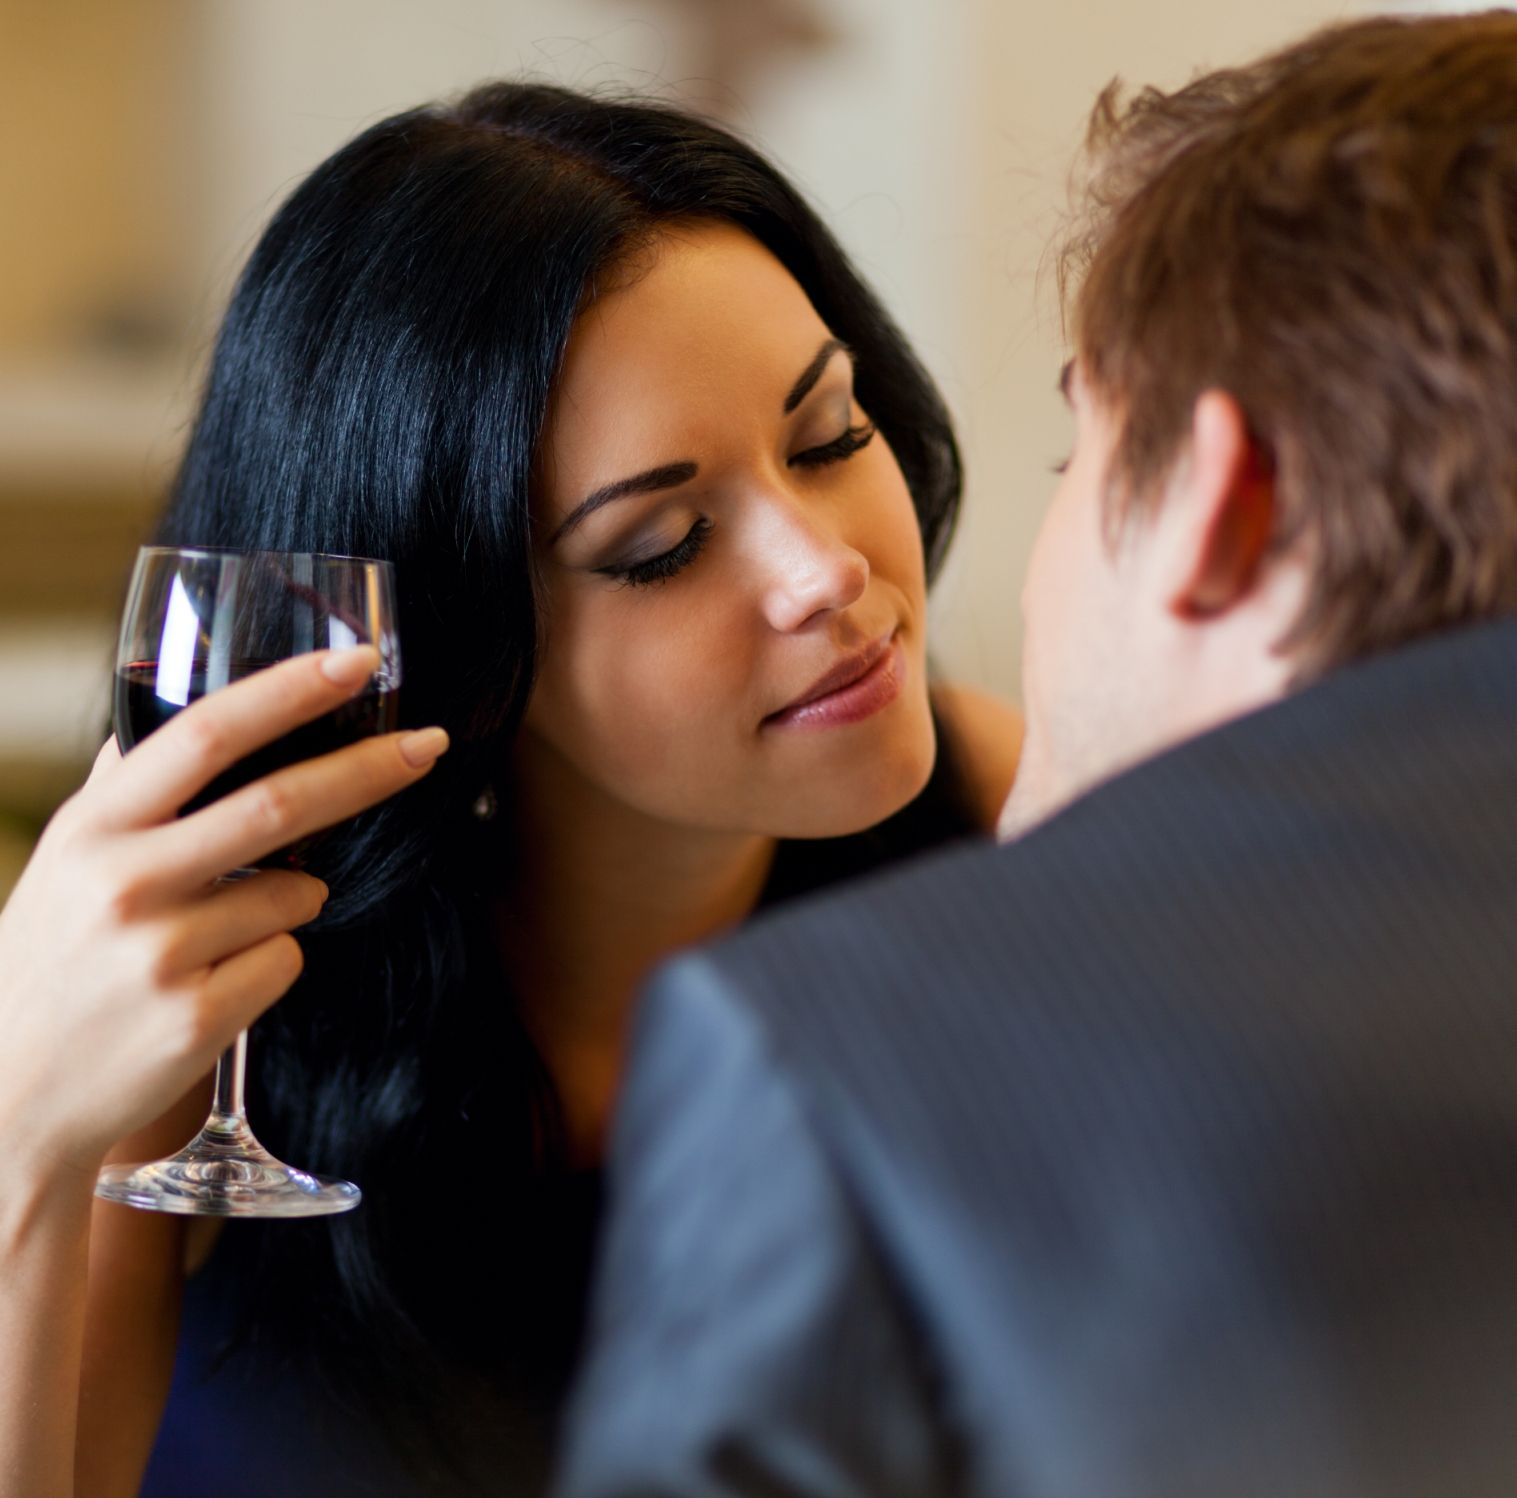 Questions to ask a man when first hookup